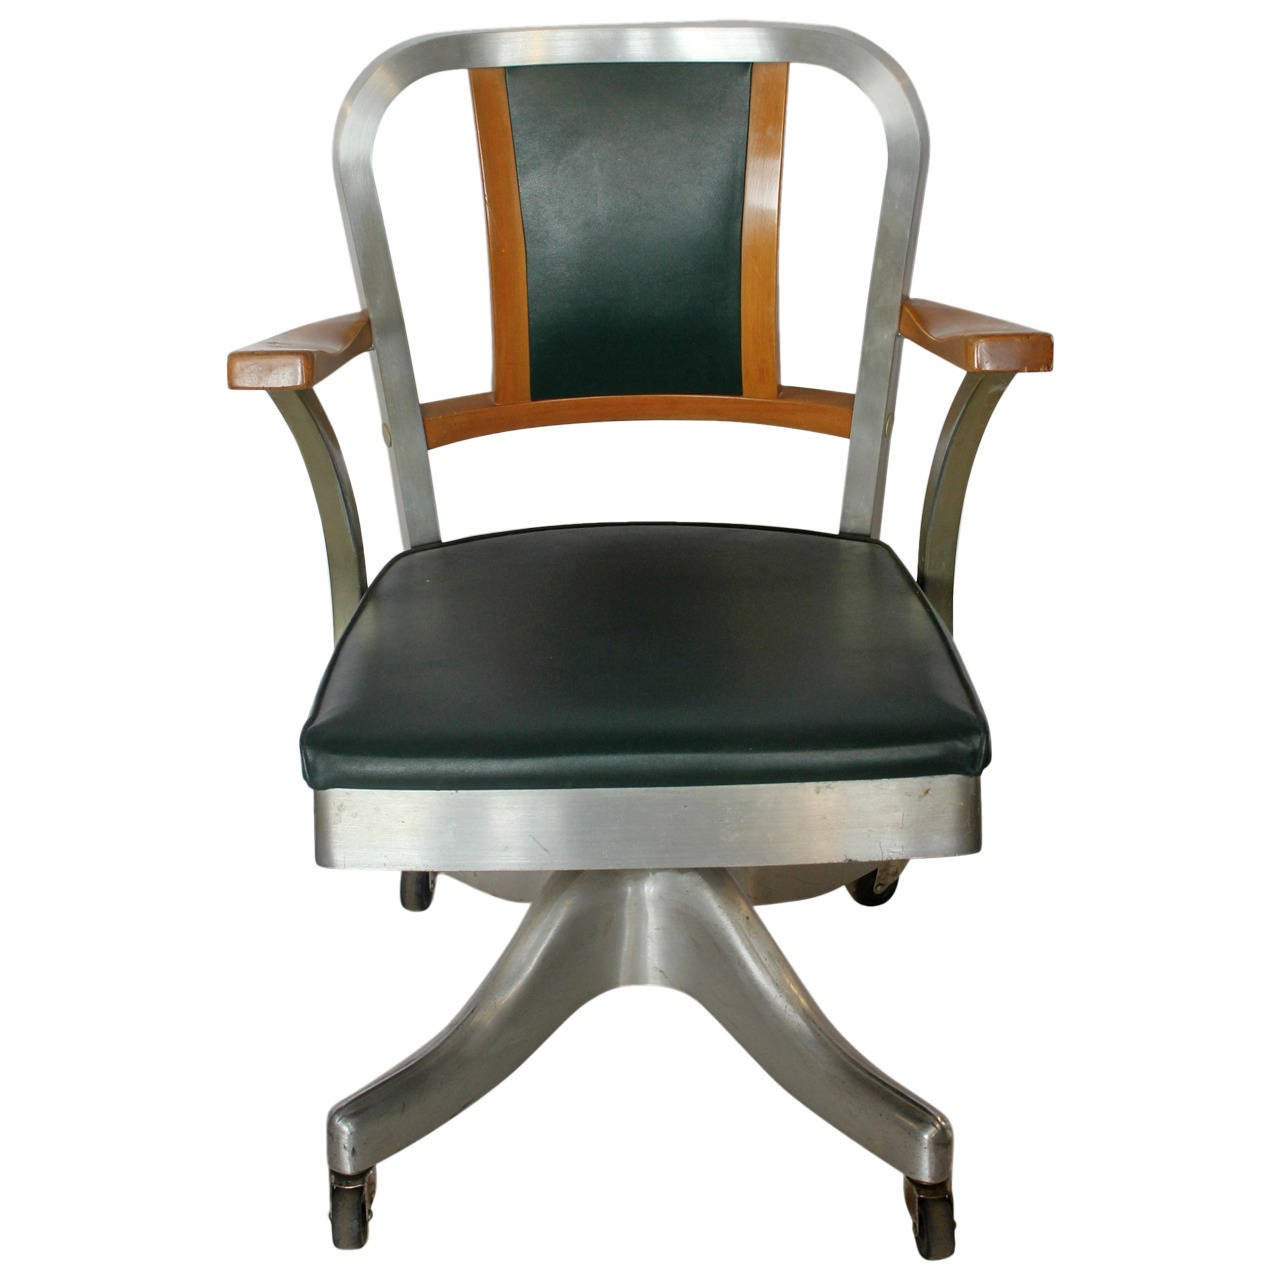 1940s desk chair by shaw walker at 1stdibs